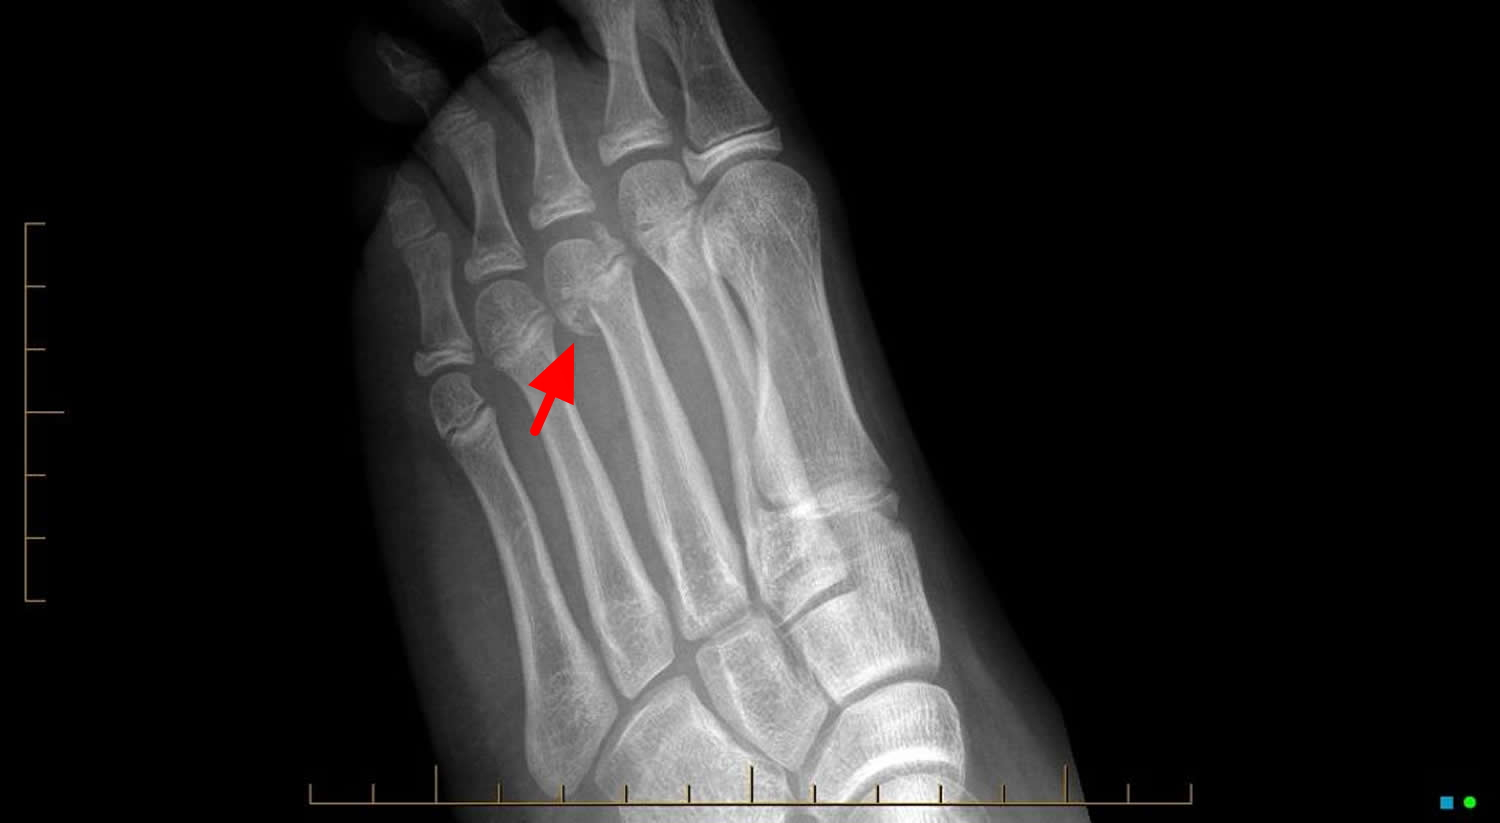 Metatarsal head growth plate fracture